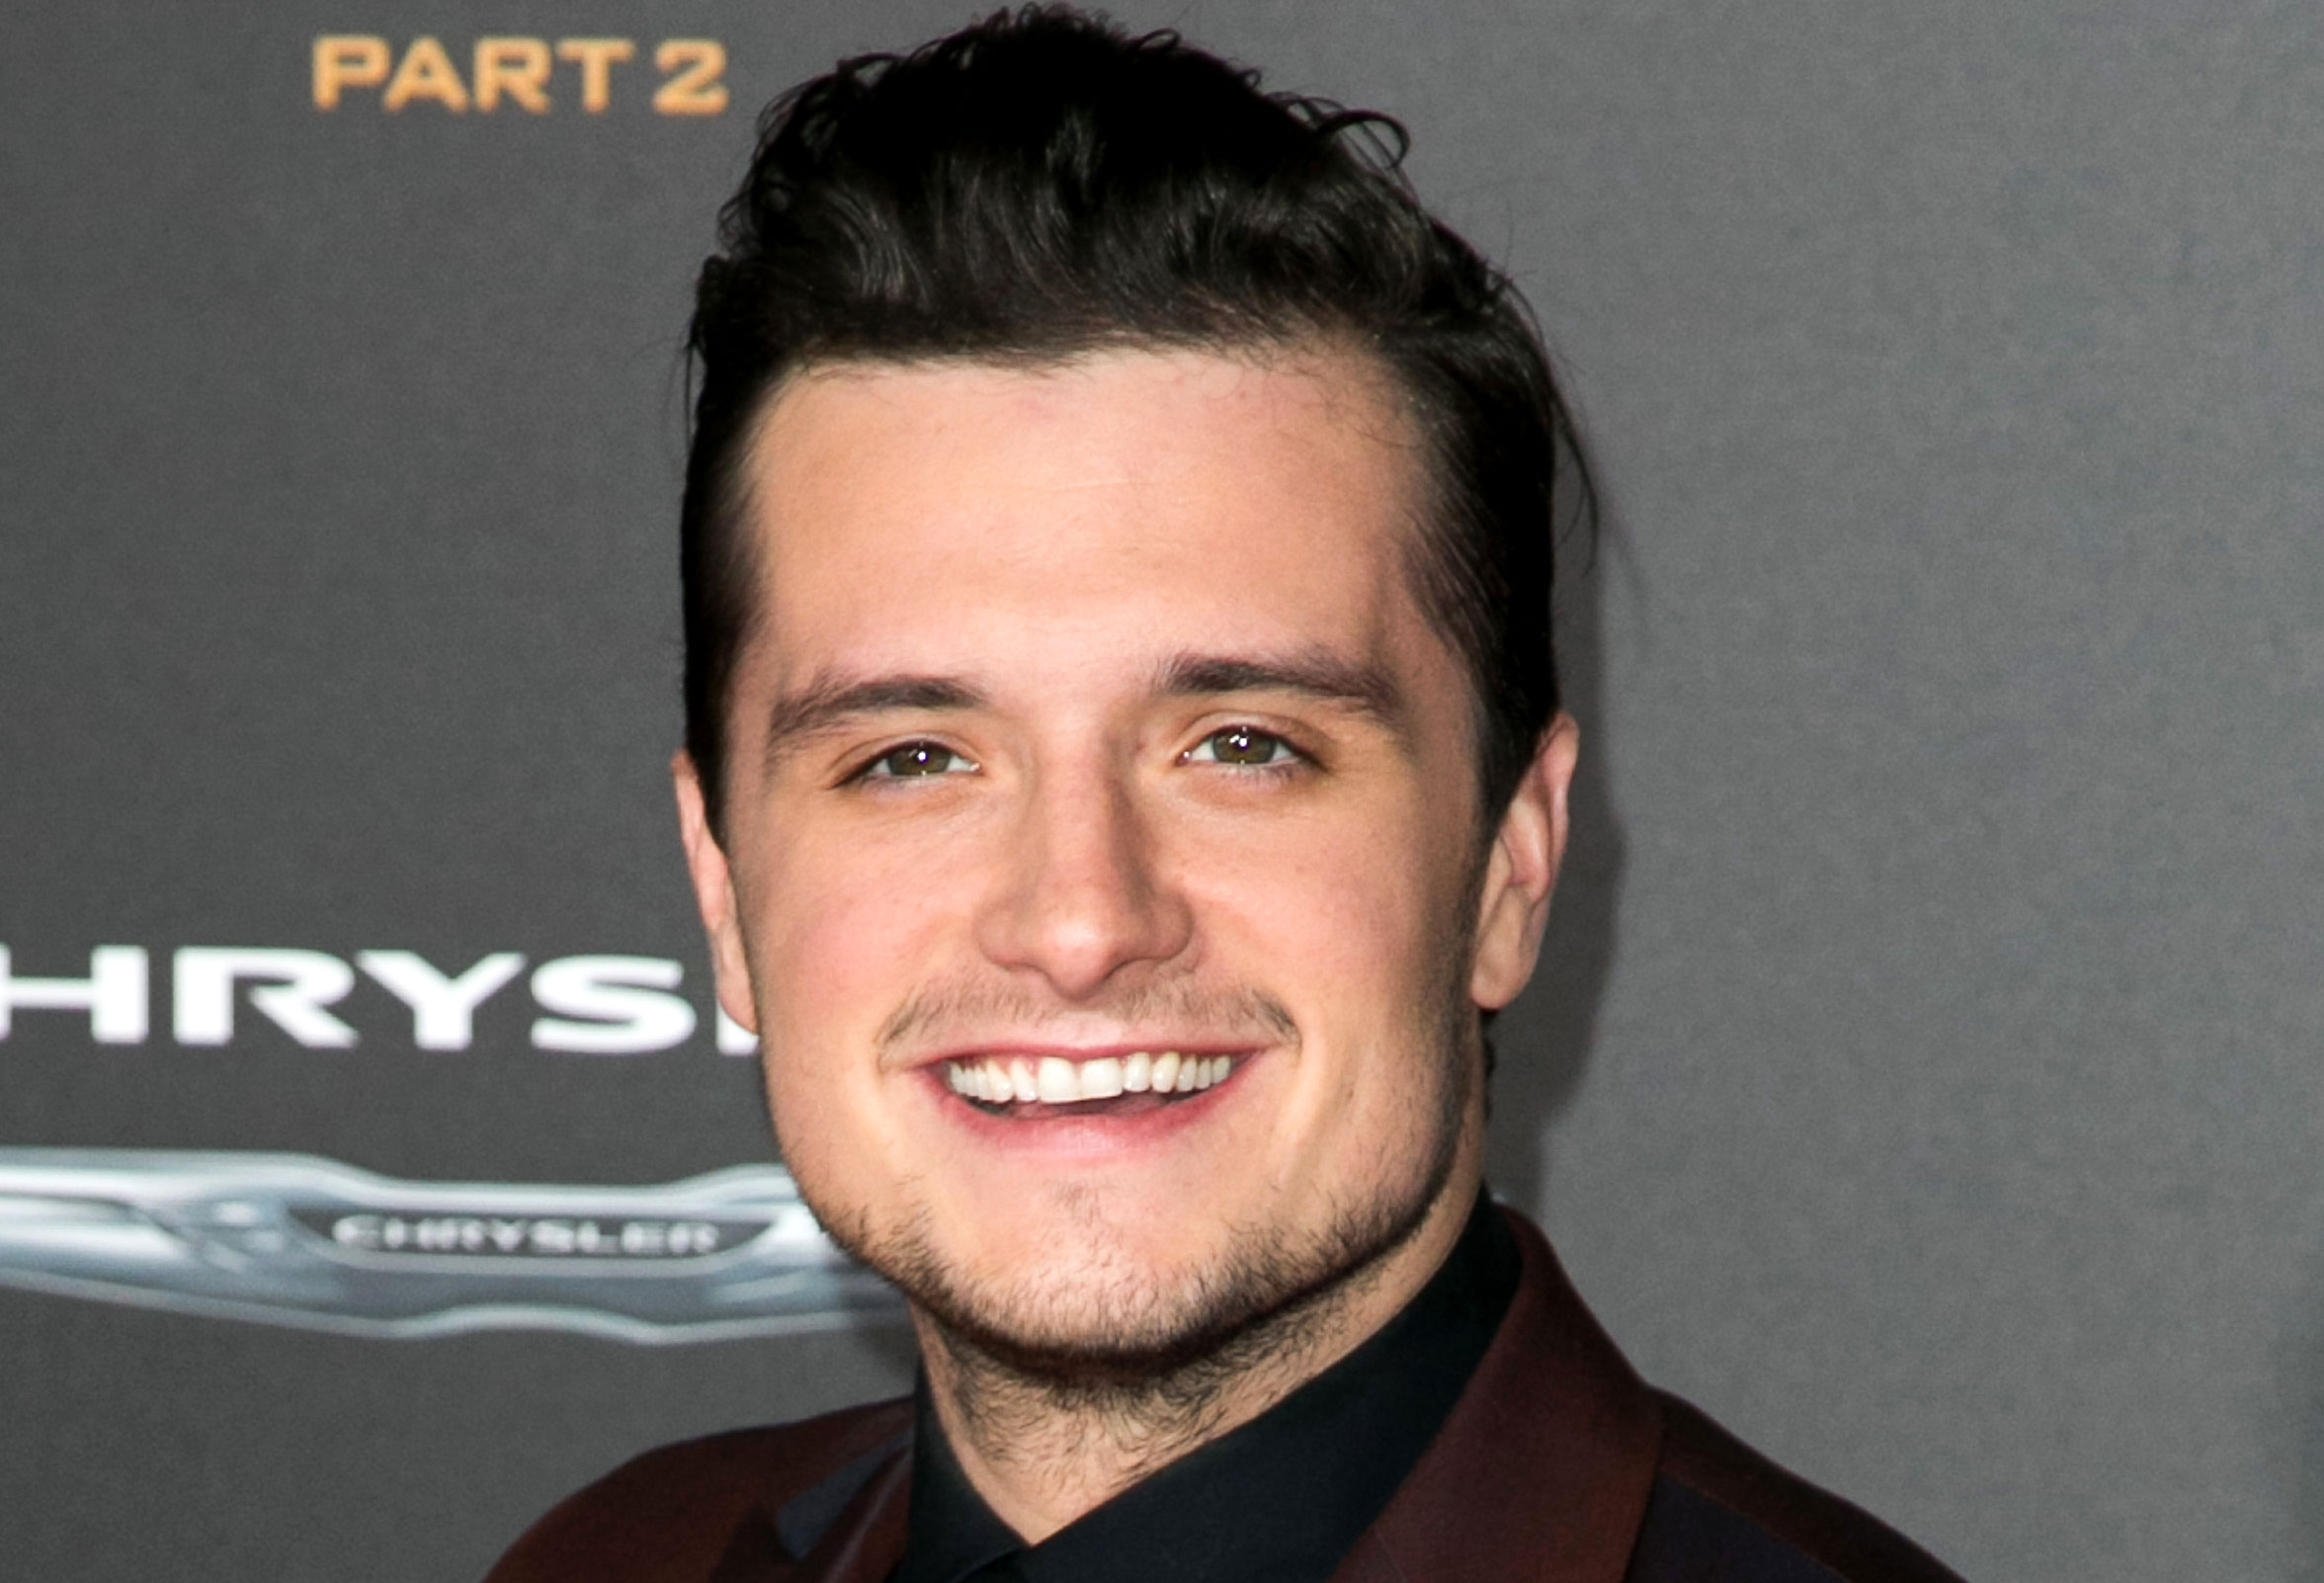 josh hutcherson amp �hunger games� 4 yes please see what